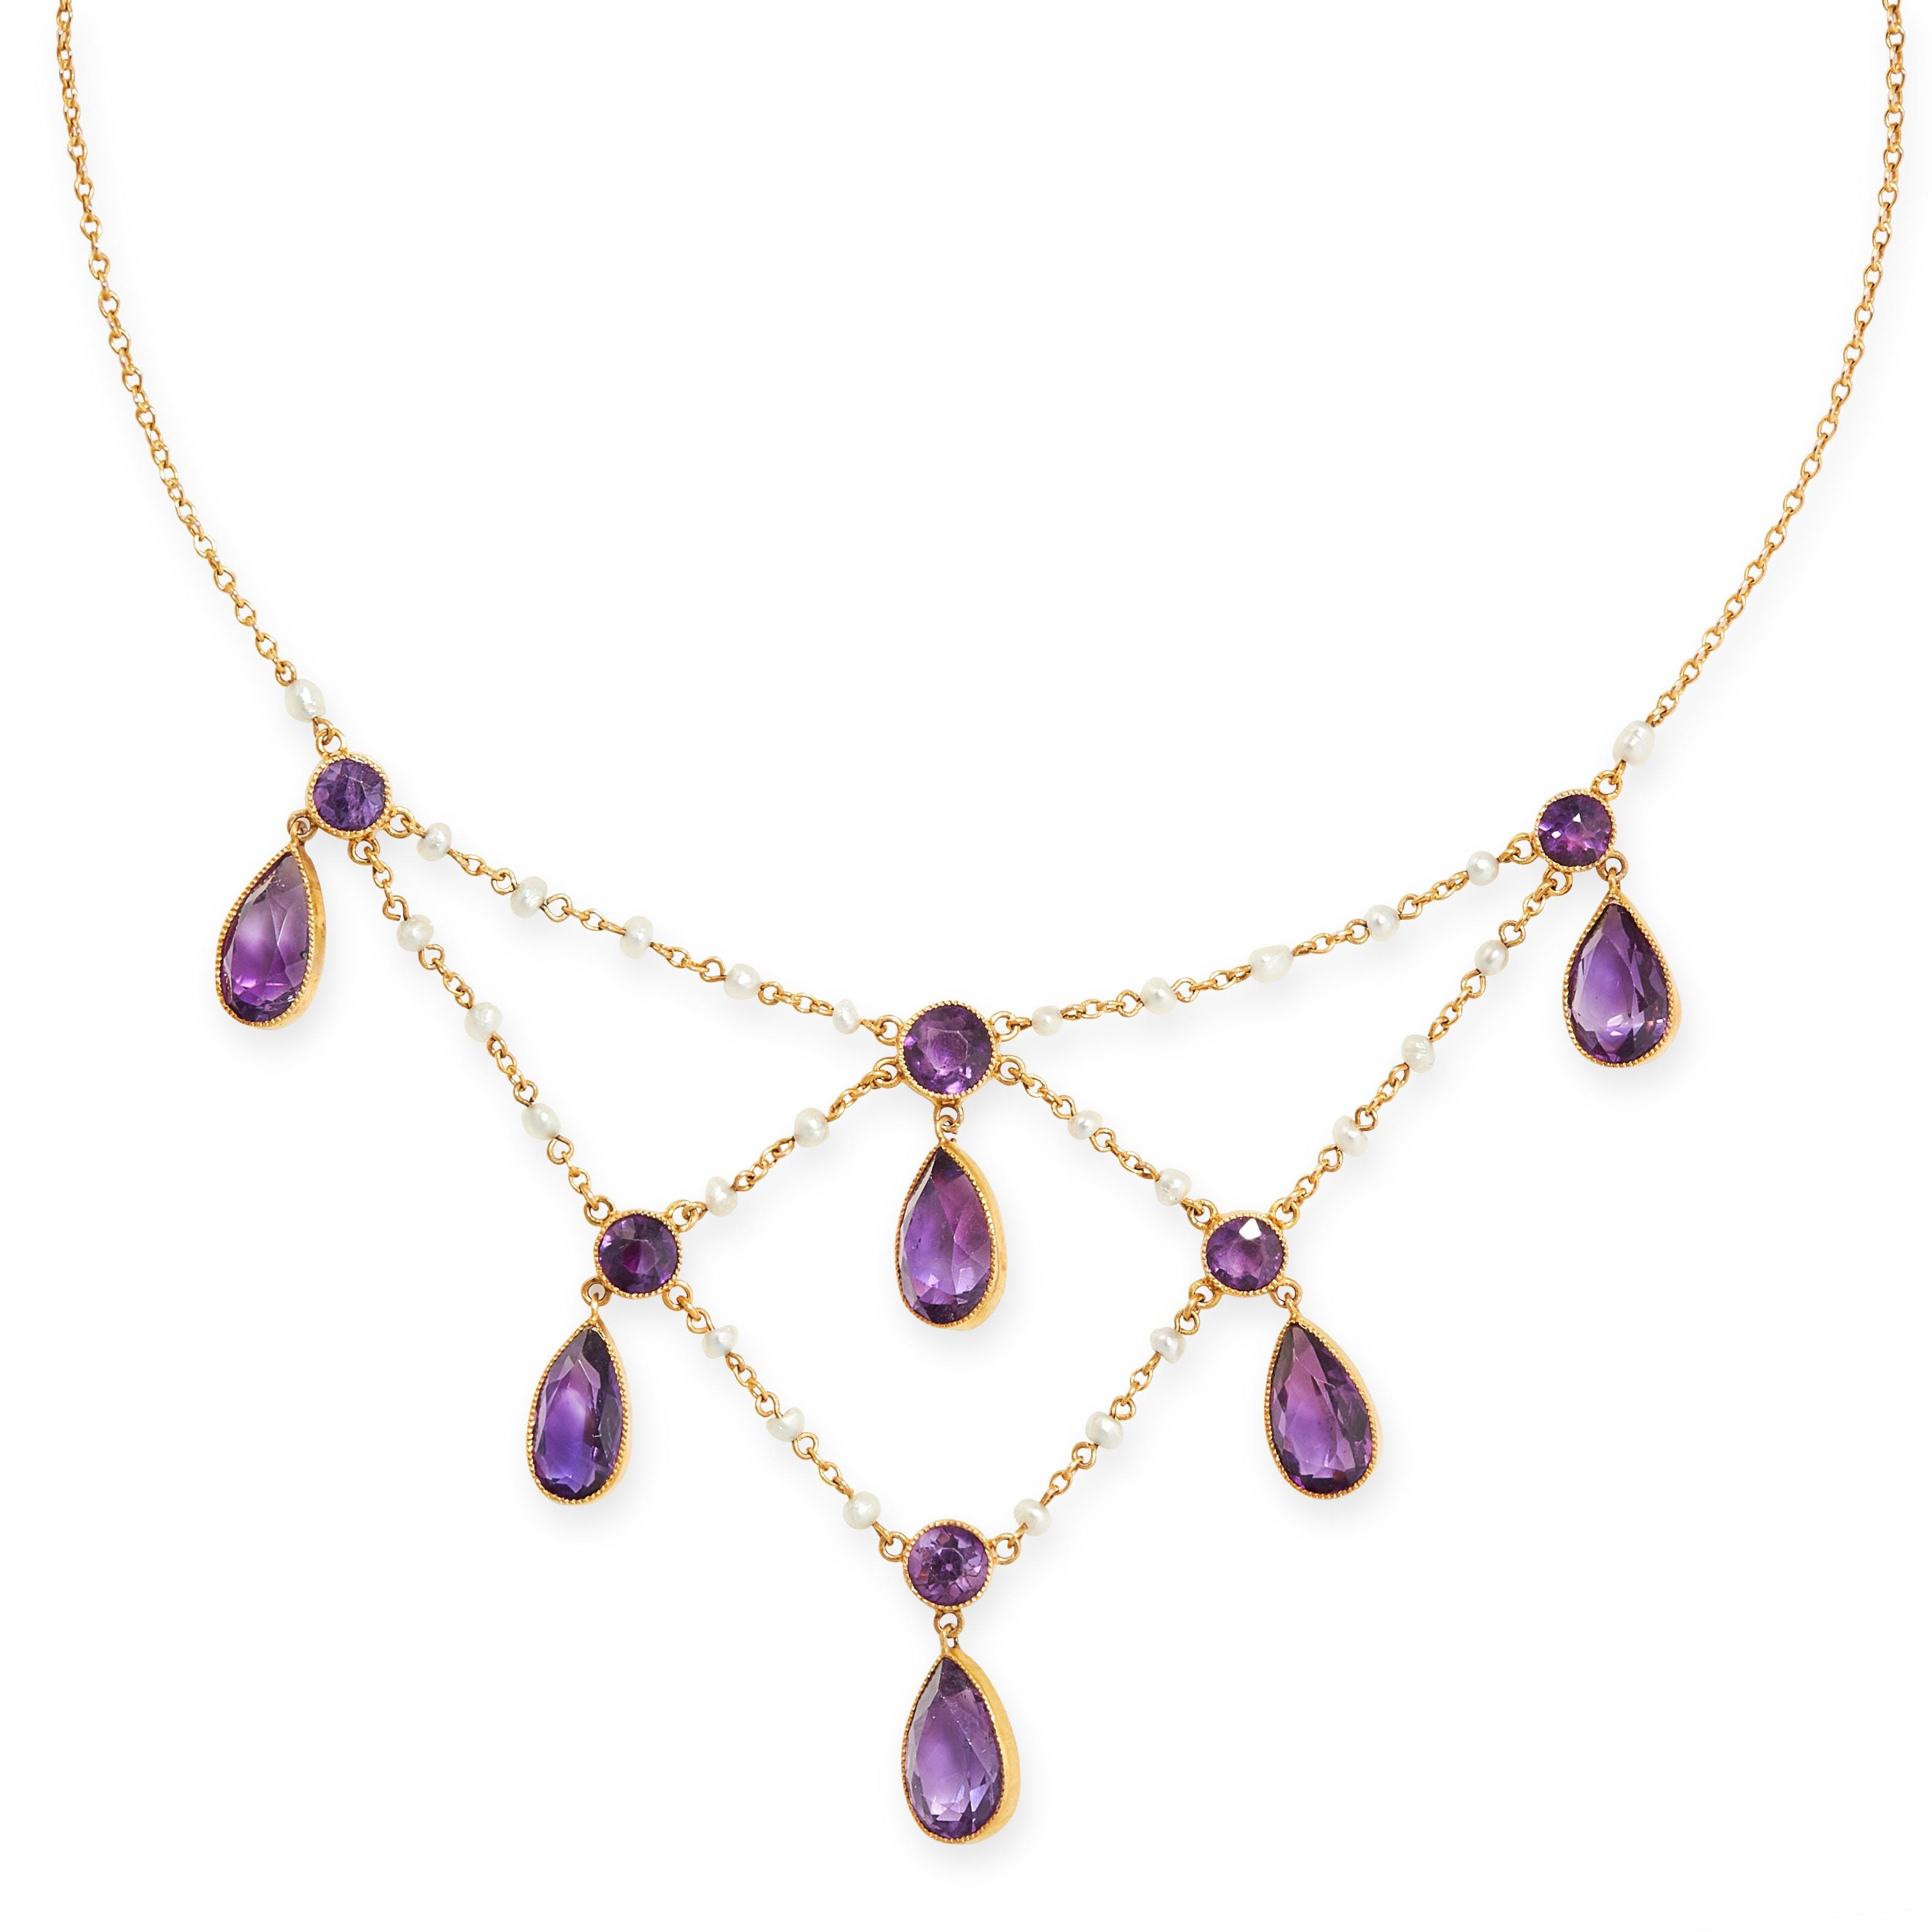 ANTIQUE AMETHYST AND SEED PEARL NECKLACE, CIRCA 1900 the front of festoon design, composed of